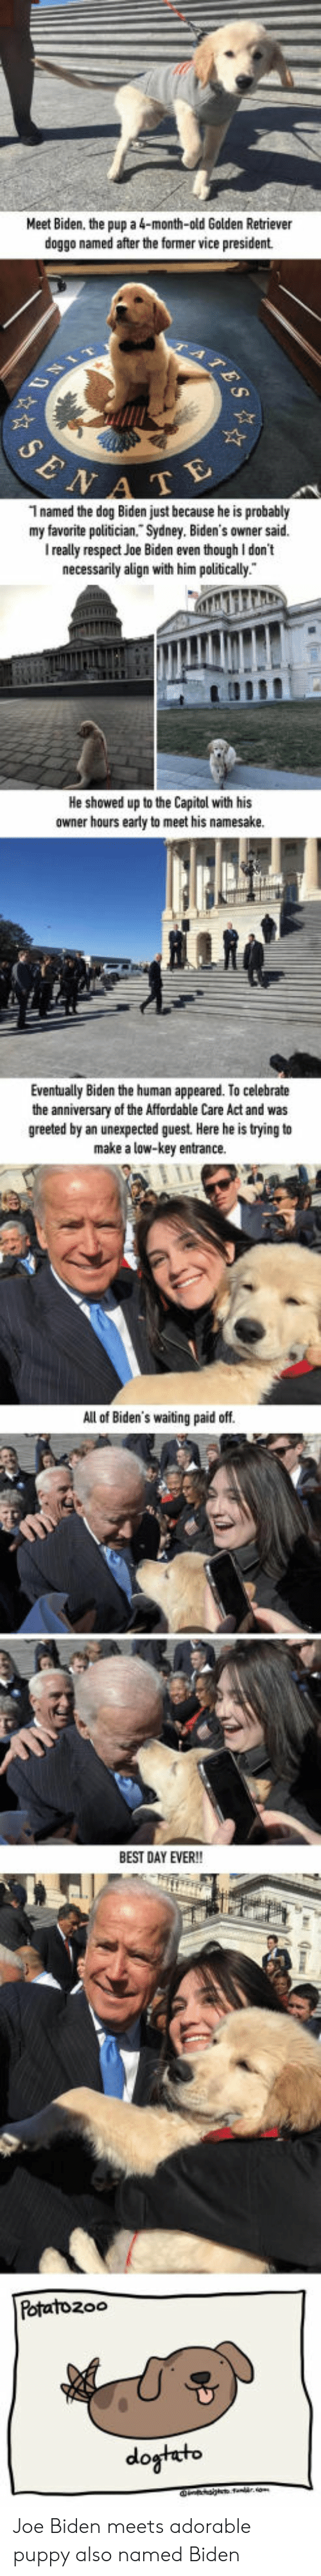 Joe Biden, Low Key, and Respect: Meet Biden, the pup a 4-month-old Golden Retriever  doggo named after the former vice president  A T  1 named the dog Biden just because he is probably  my favorite politician. Sydney. Biden's owner said.  really respect Joe Biden even though I don't  necessarily align with him politically  He showed up to the Capitol with his  owner hours early to meet his namesake.  Eventually Biden the human appeared. To celebrate  the anniversary of  greeted by an unexpected guest. Here he is trying to  the Affordable Care Act and was  make a low-key entrance.  All of Biden's waiting paid off  BEST DAY EVER!  Potatozoo  do Joe Biden meets adorable puppy also named Biden